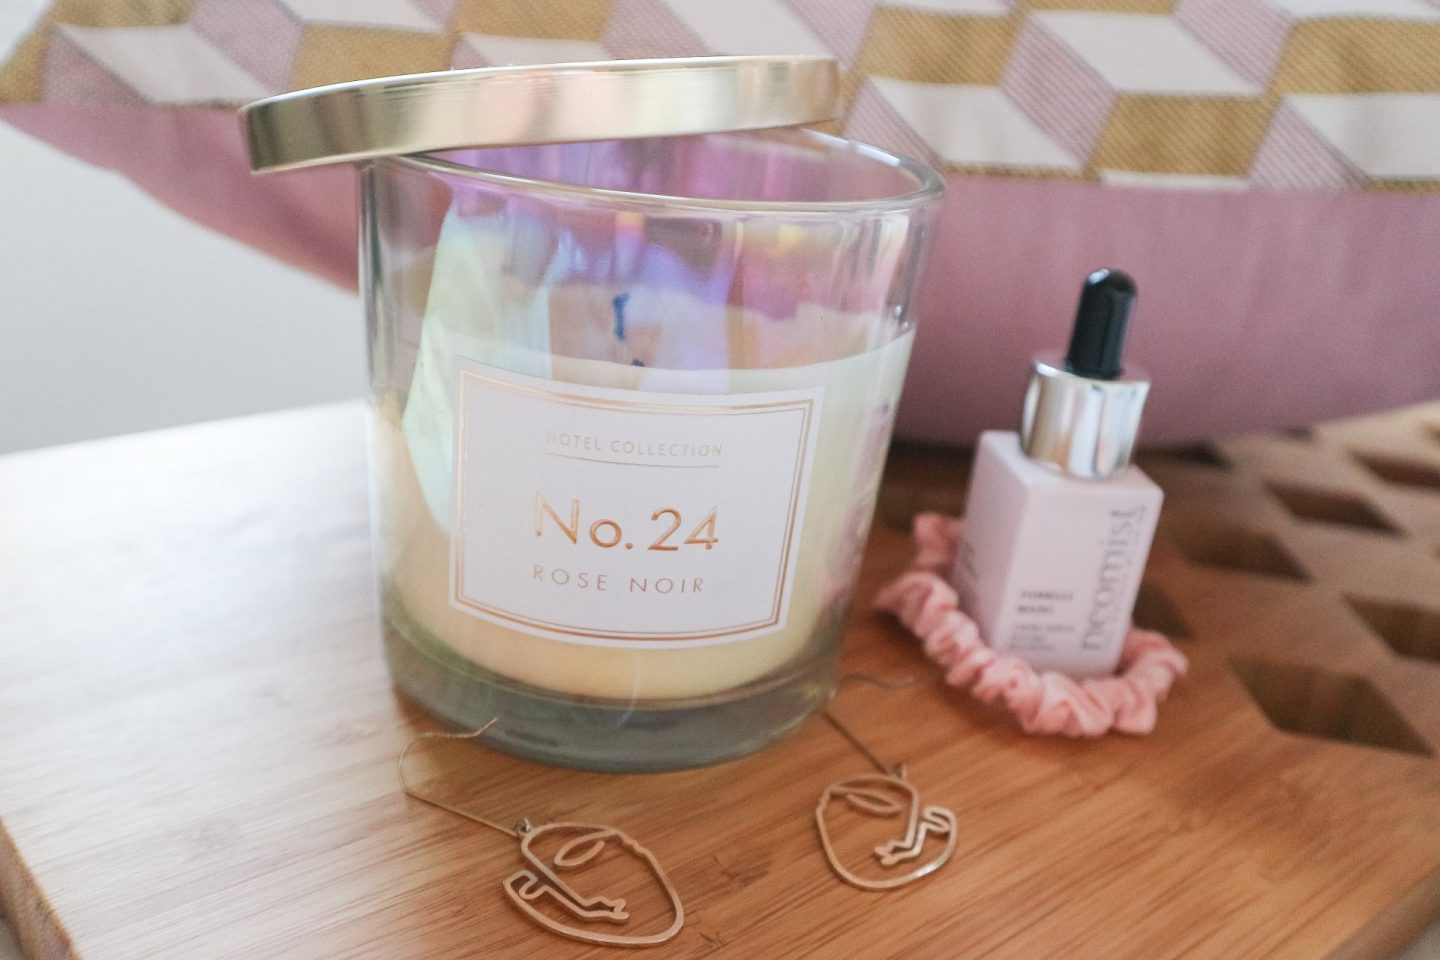 Aldi Rose Noir Candle